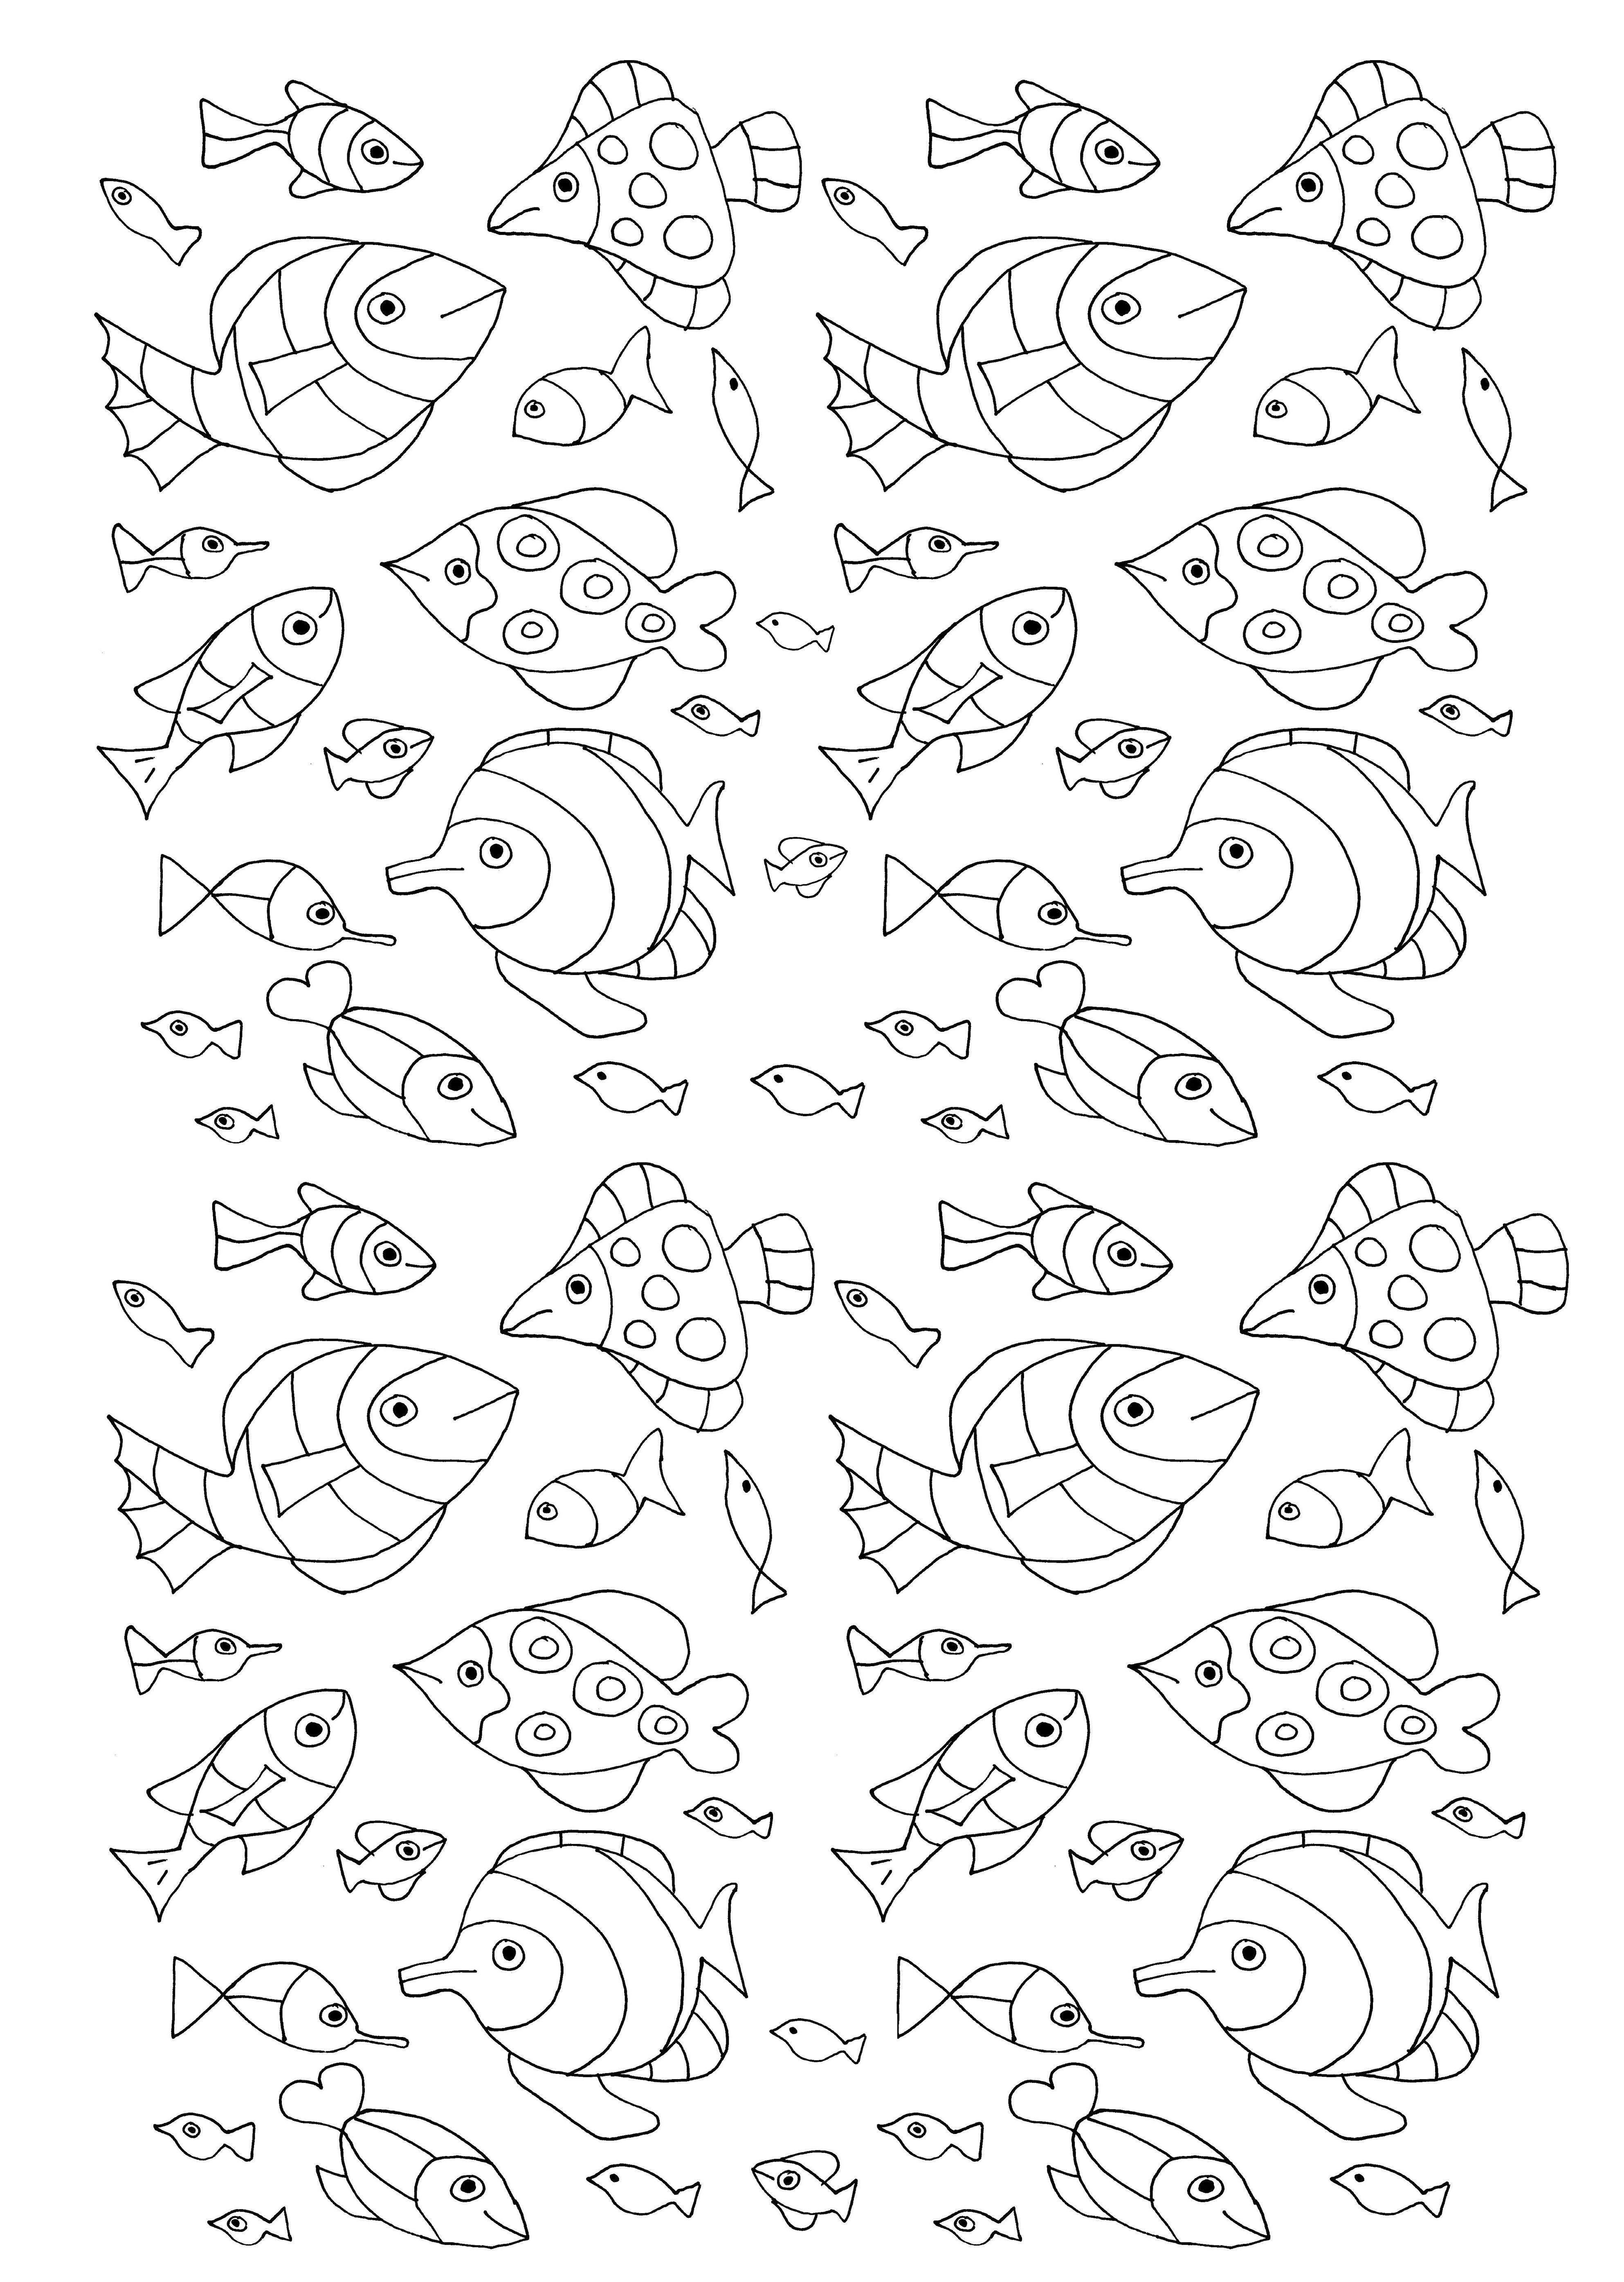 Numerous Fish Water Worlds Coloring Pages For Adults